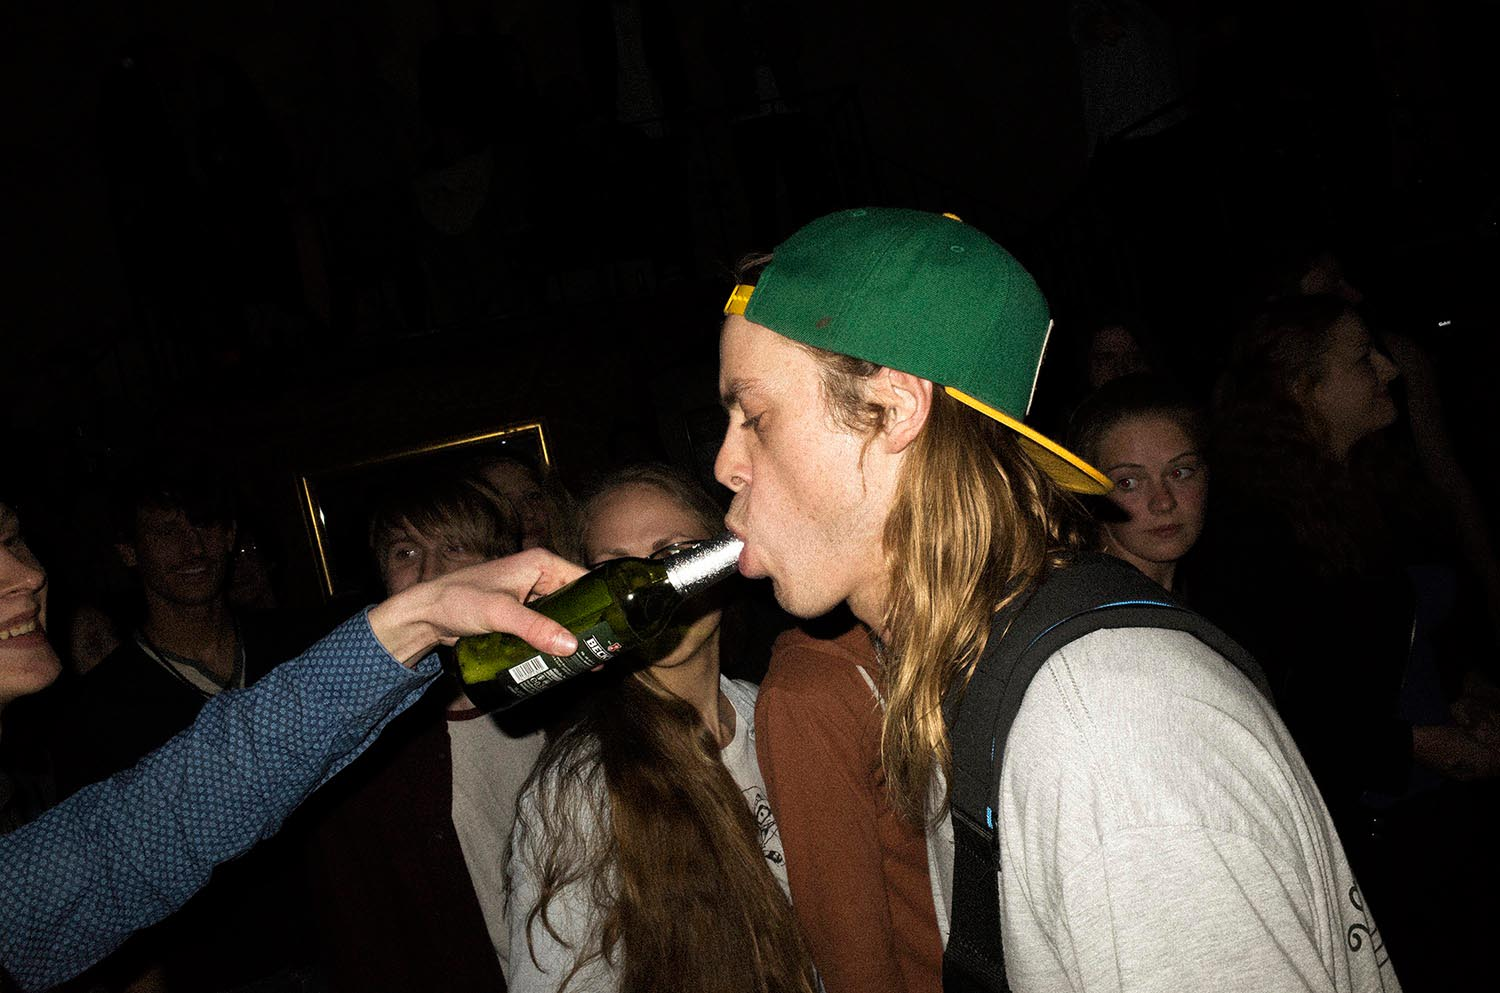 People concert singer musician man bottle beer longhair